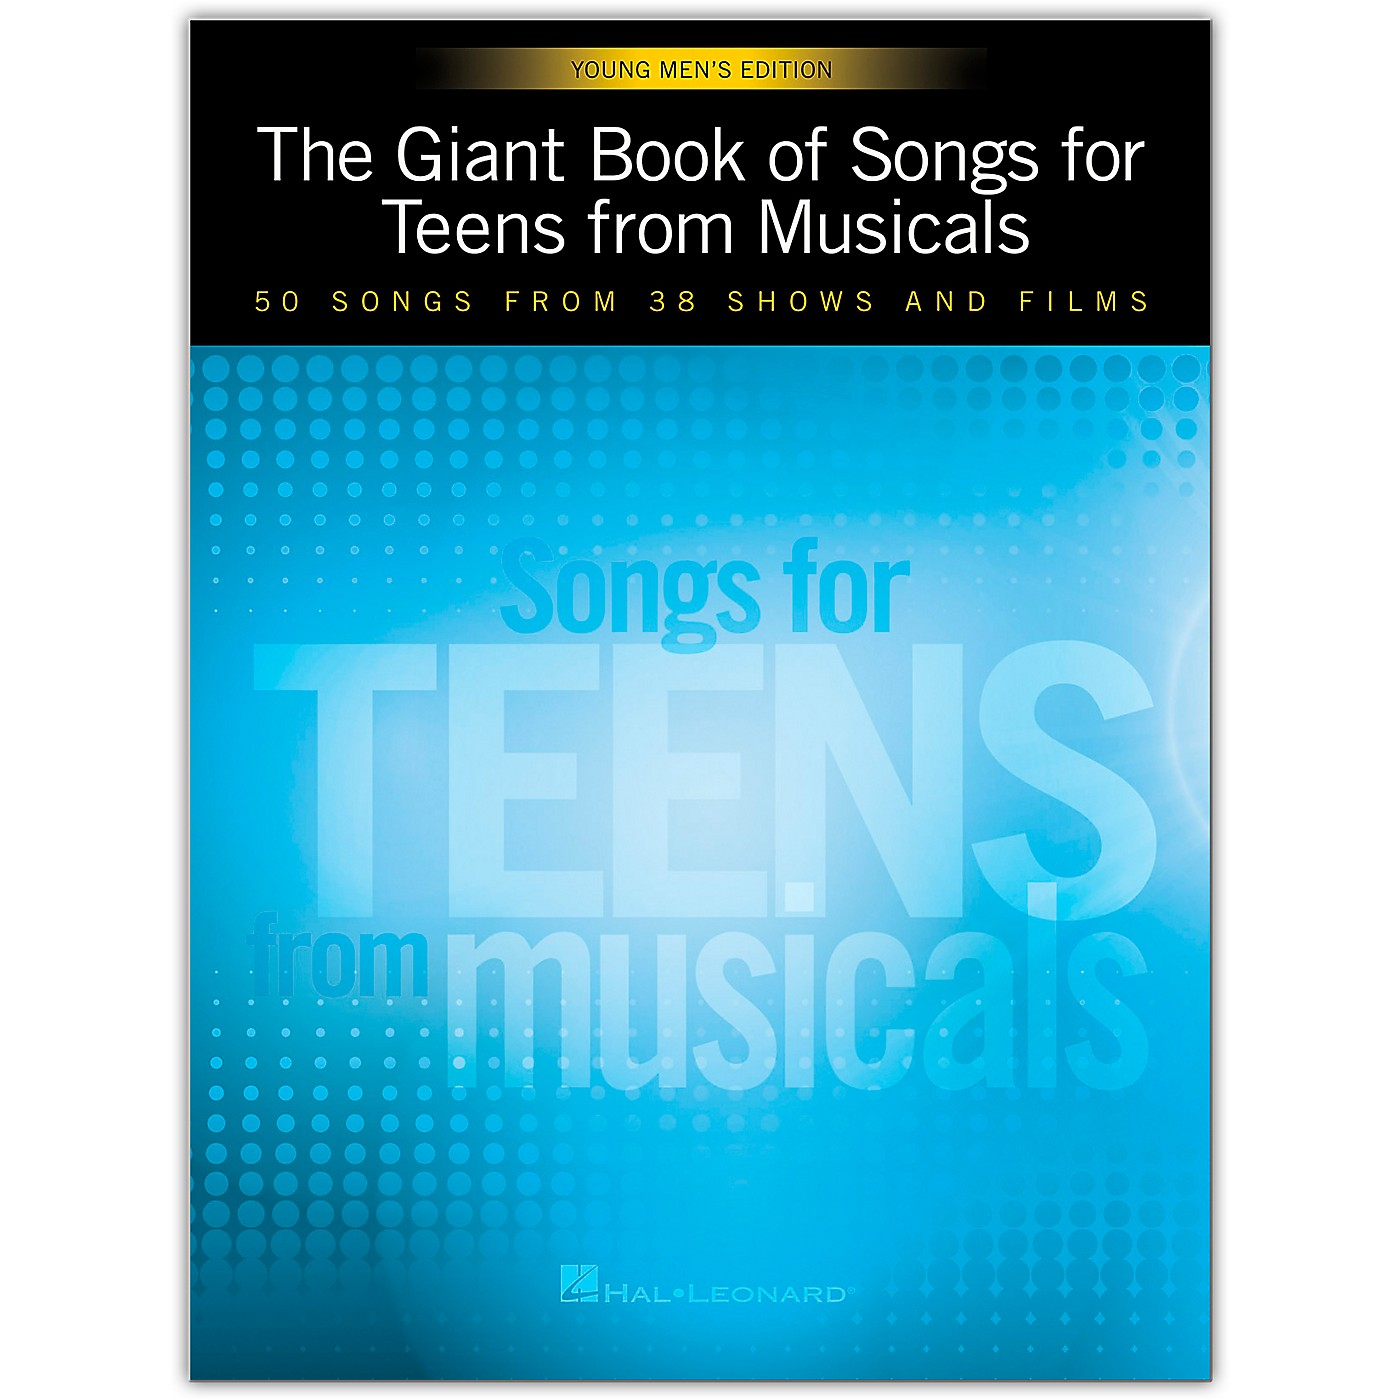 Hal Leonard The Giant Book of Songs for Teens from Musicals - Young Men's Edition  50 Songs from 38 Shows and Films thumbnail